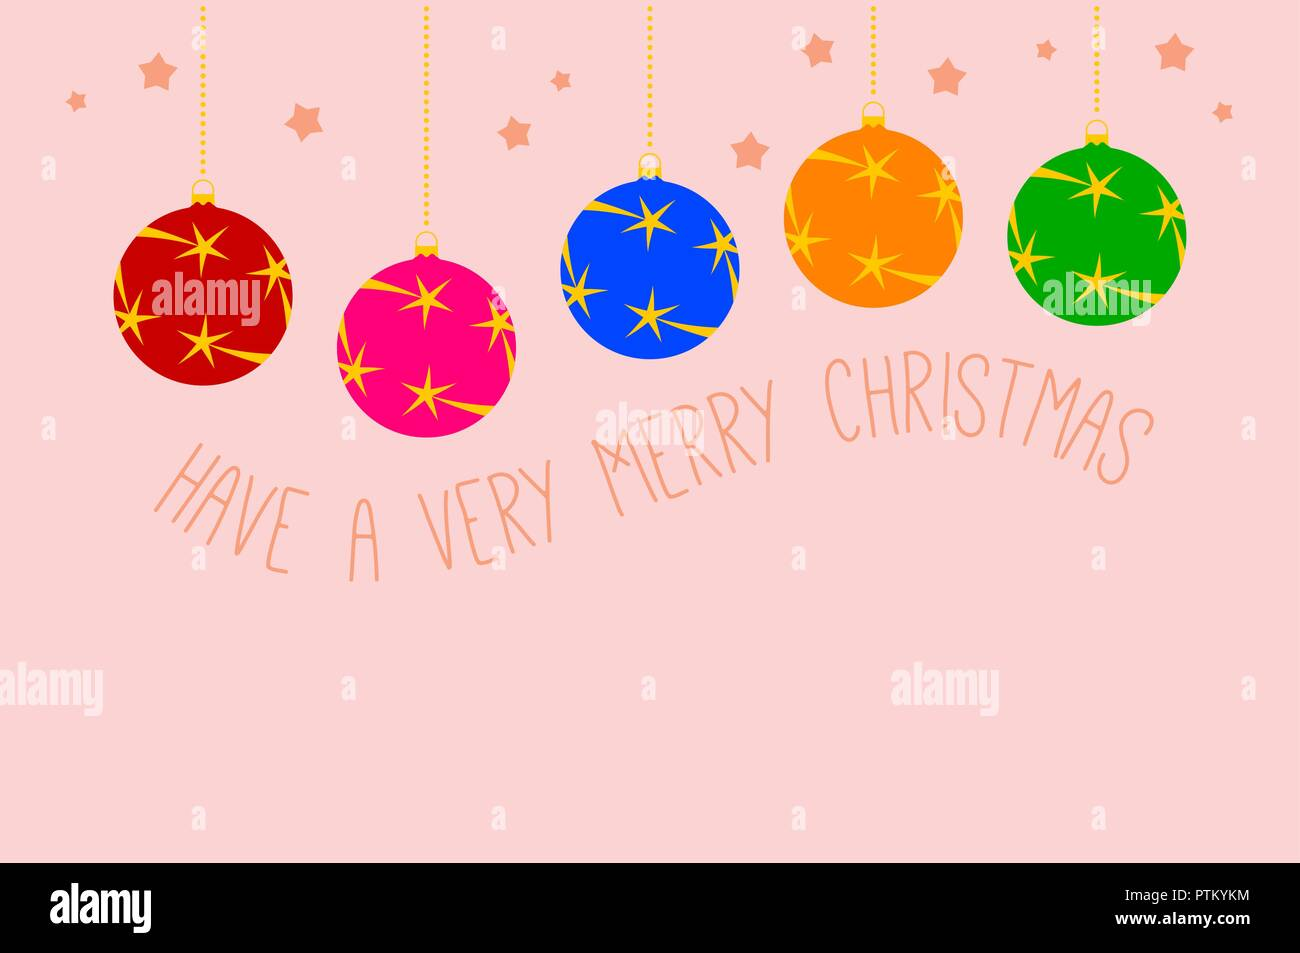 flat hanging christmas balls vector christmas greeting card template merry christmas happy new year design elements resource for creating postcard